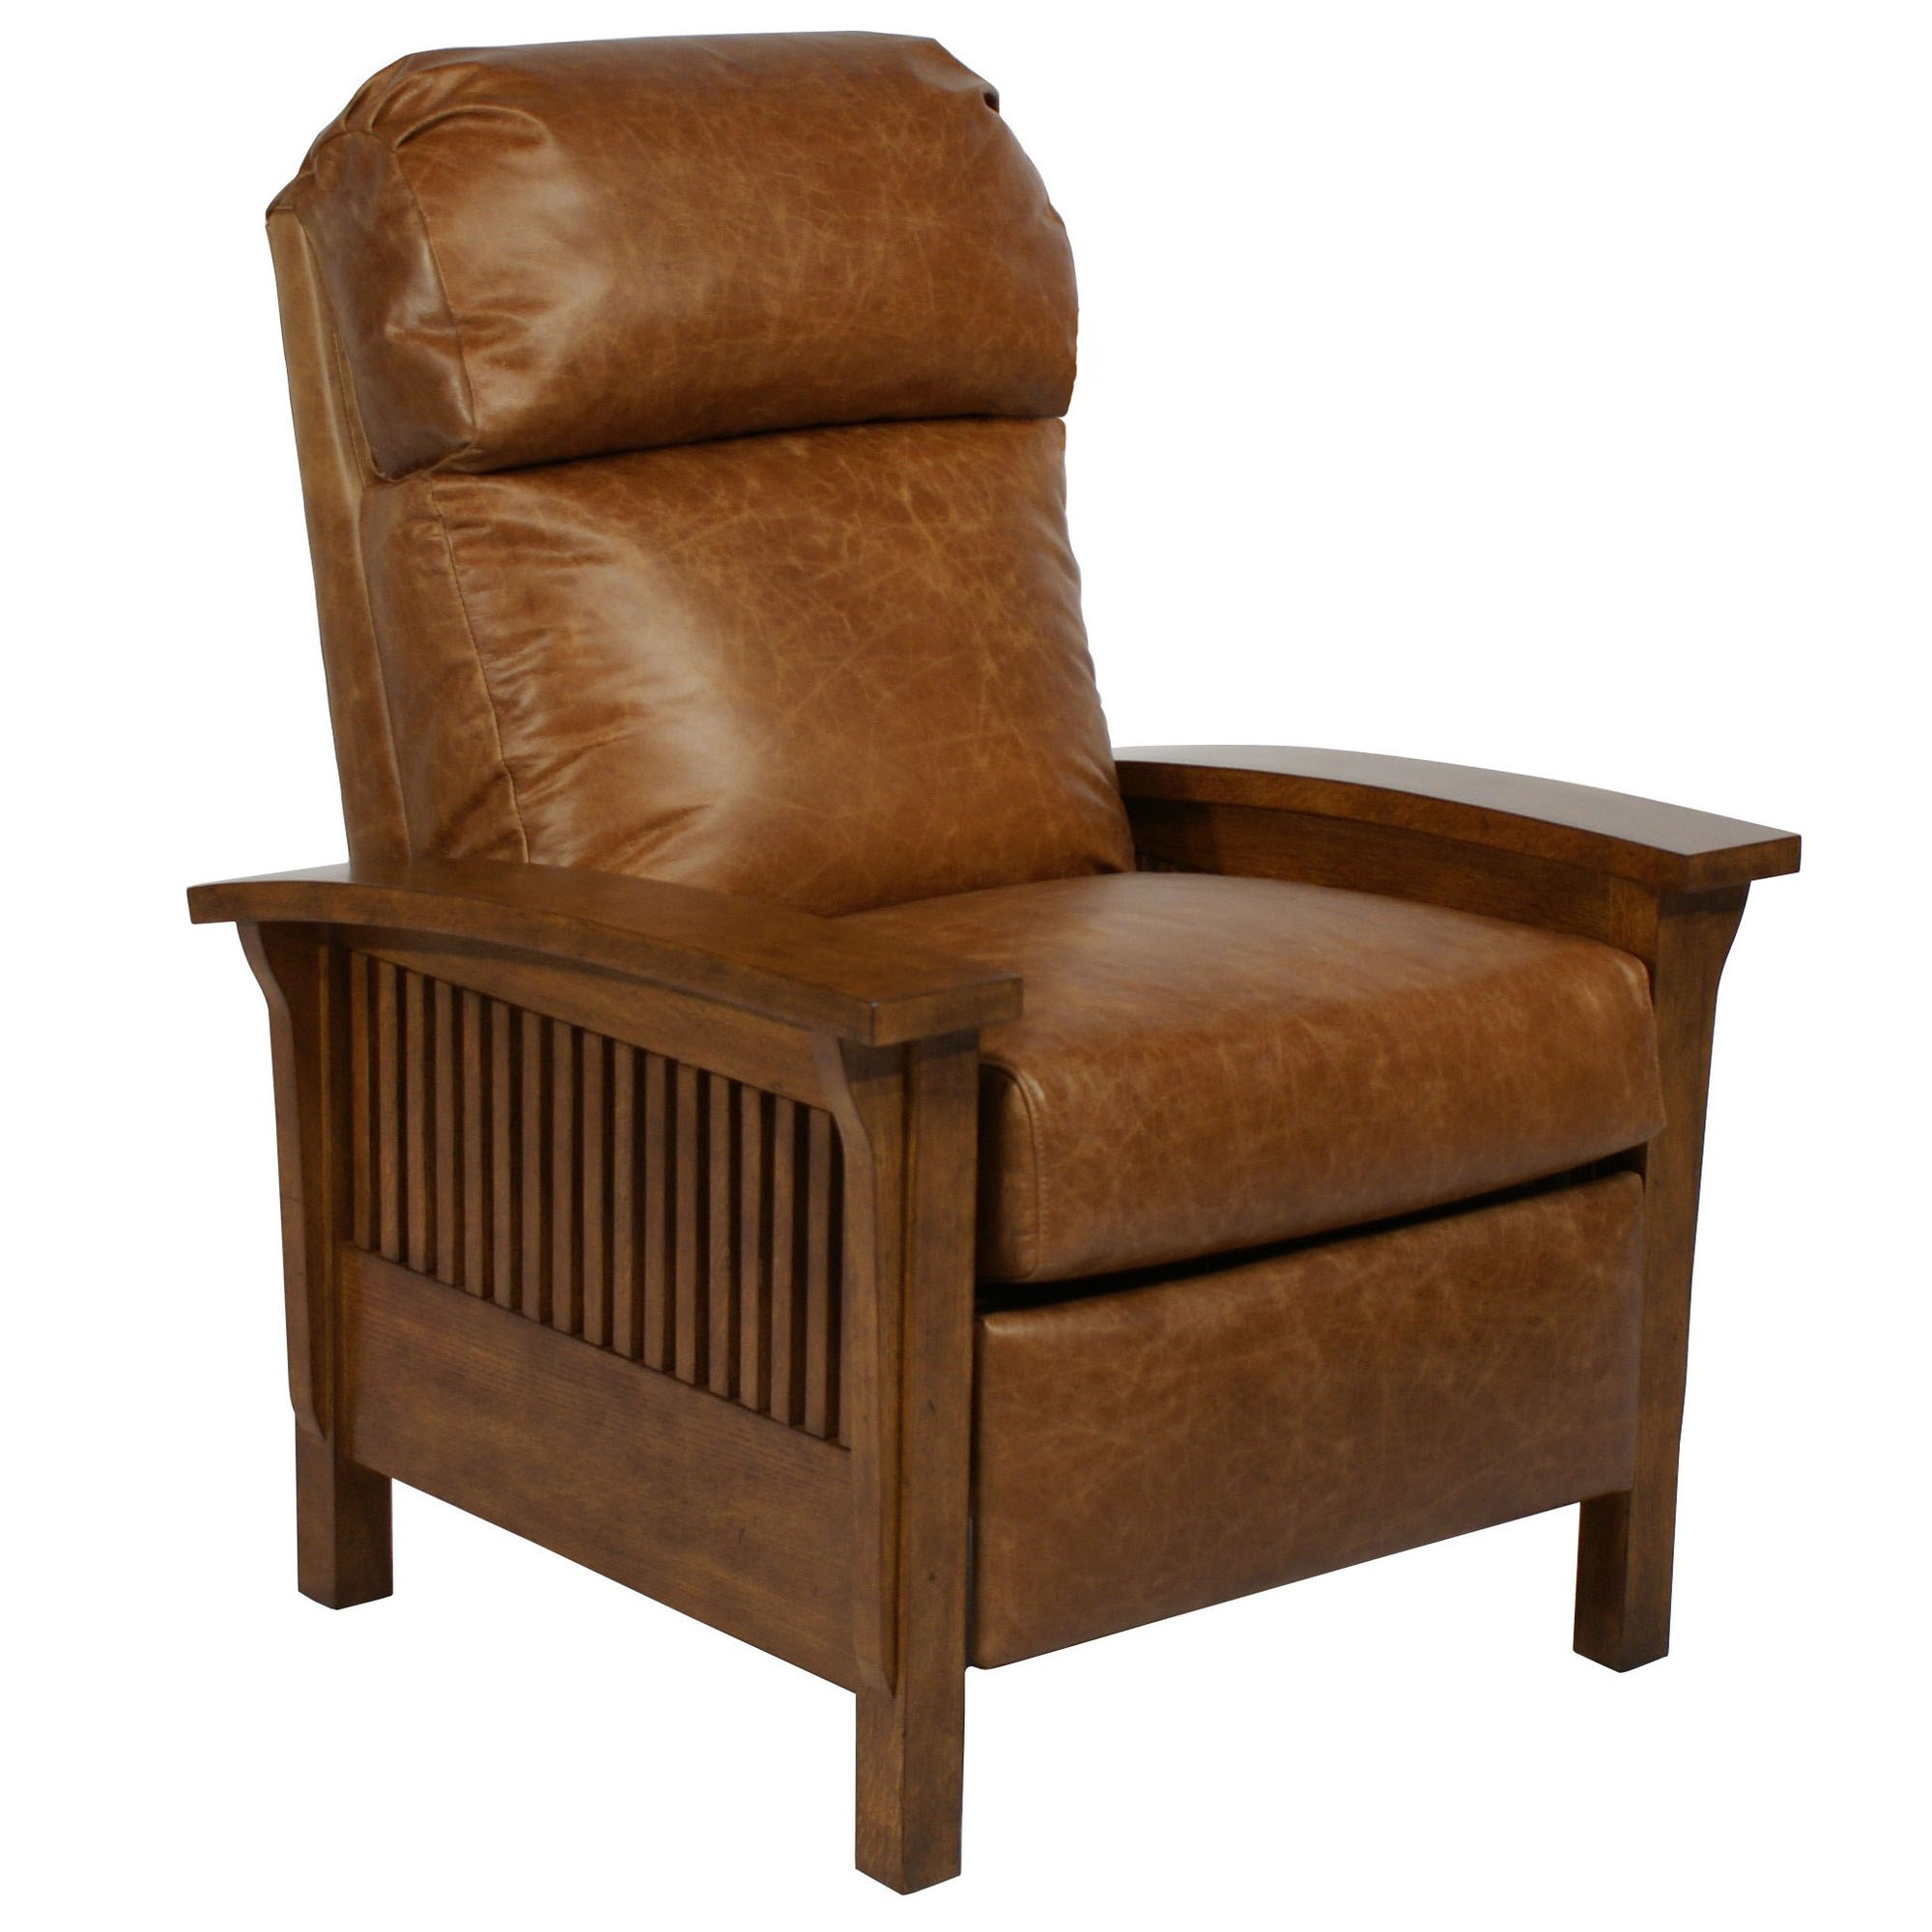 Barcalounger Craftsman II Recliner Chair